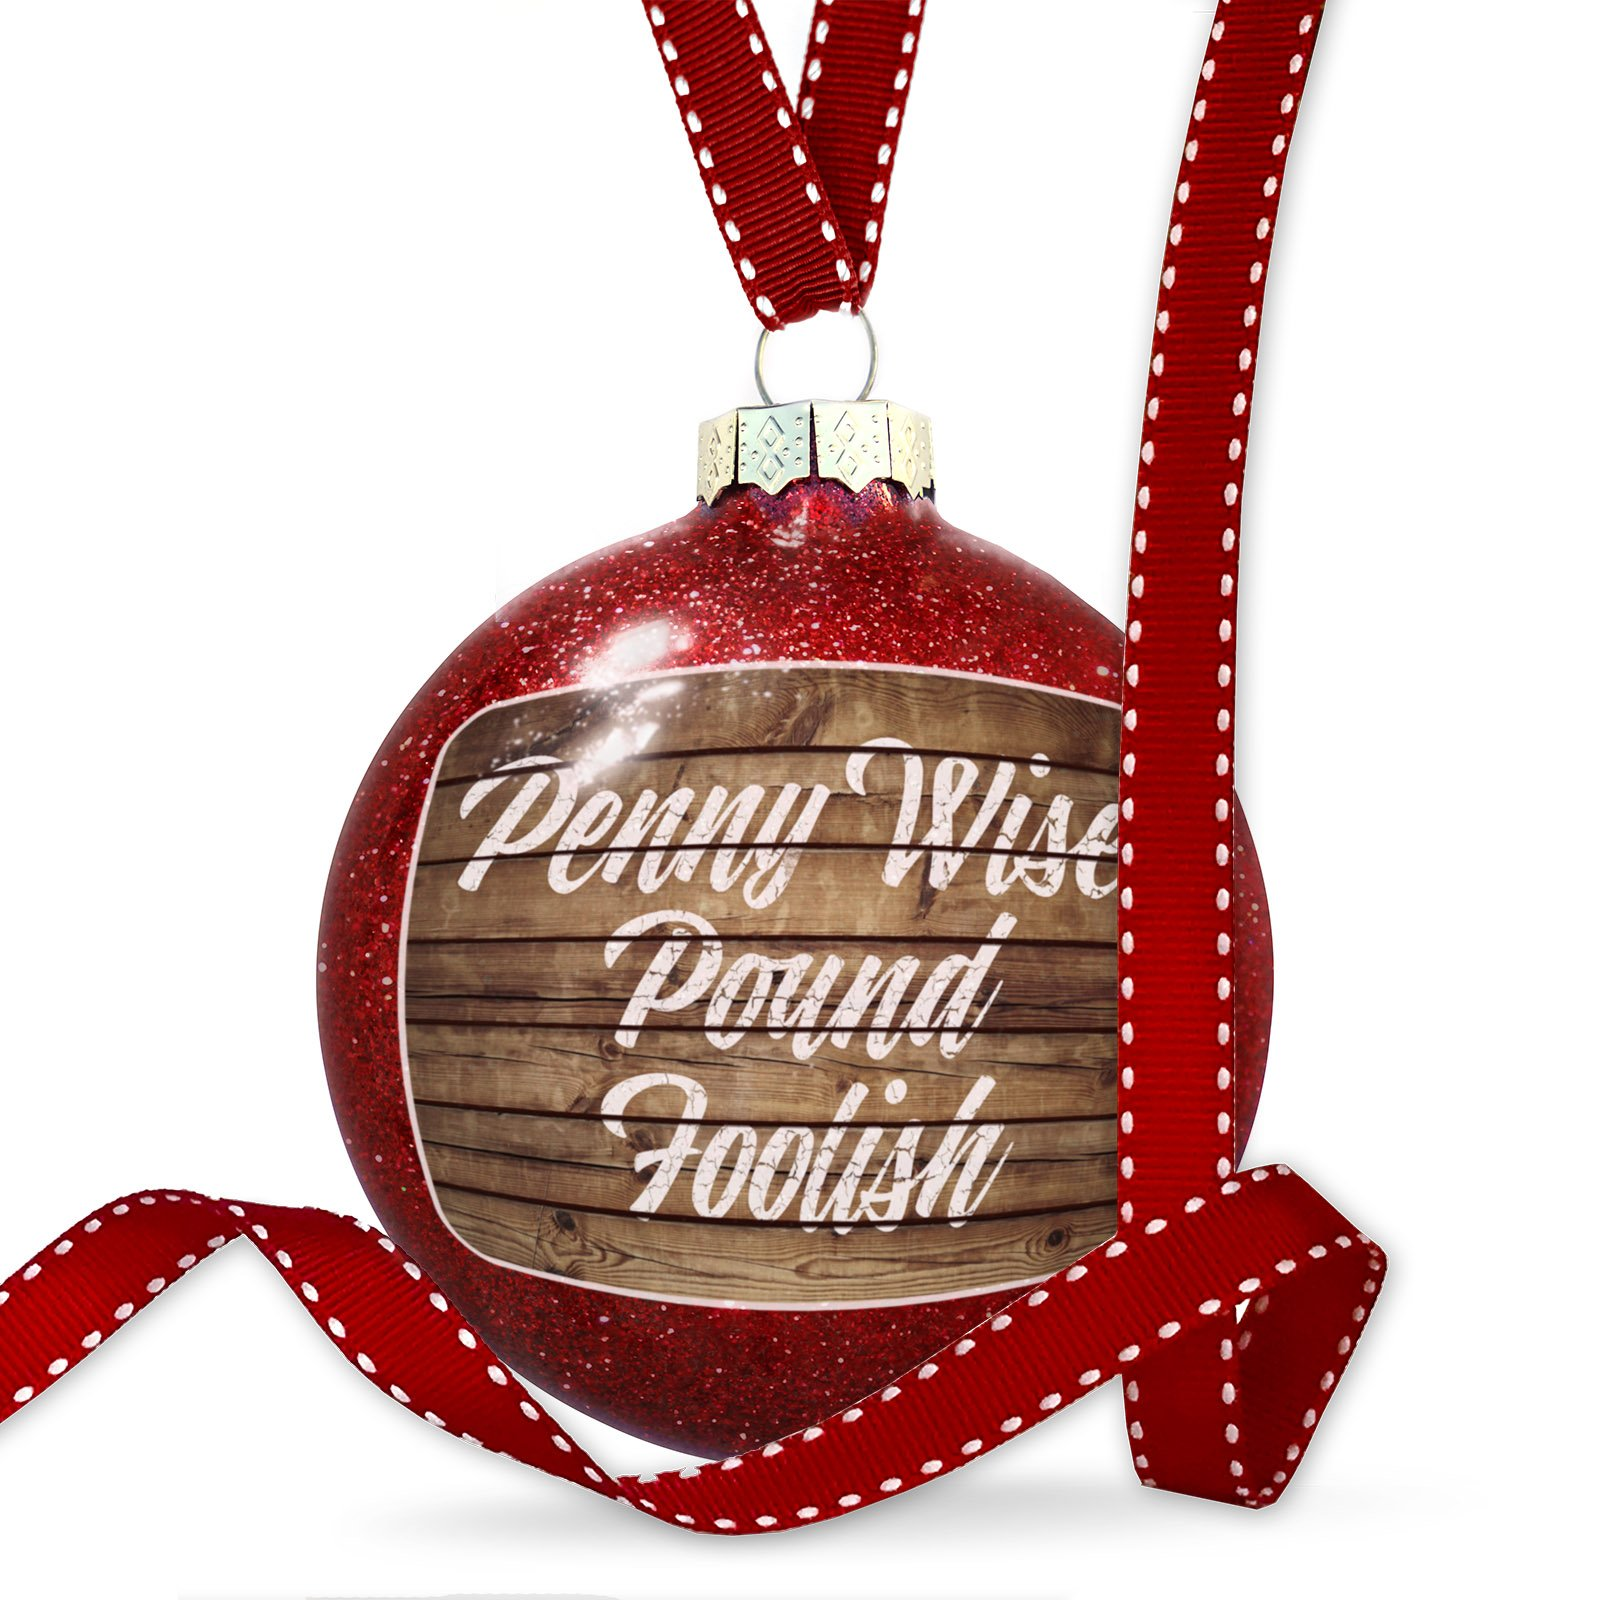 Christmas Decoration Painted Wood Penny Wise Pound Foolish Ornament